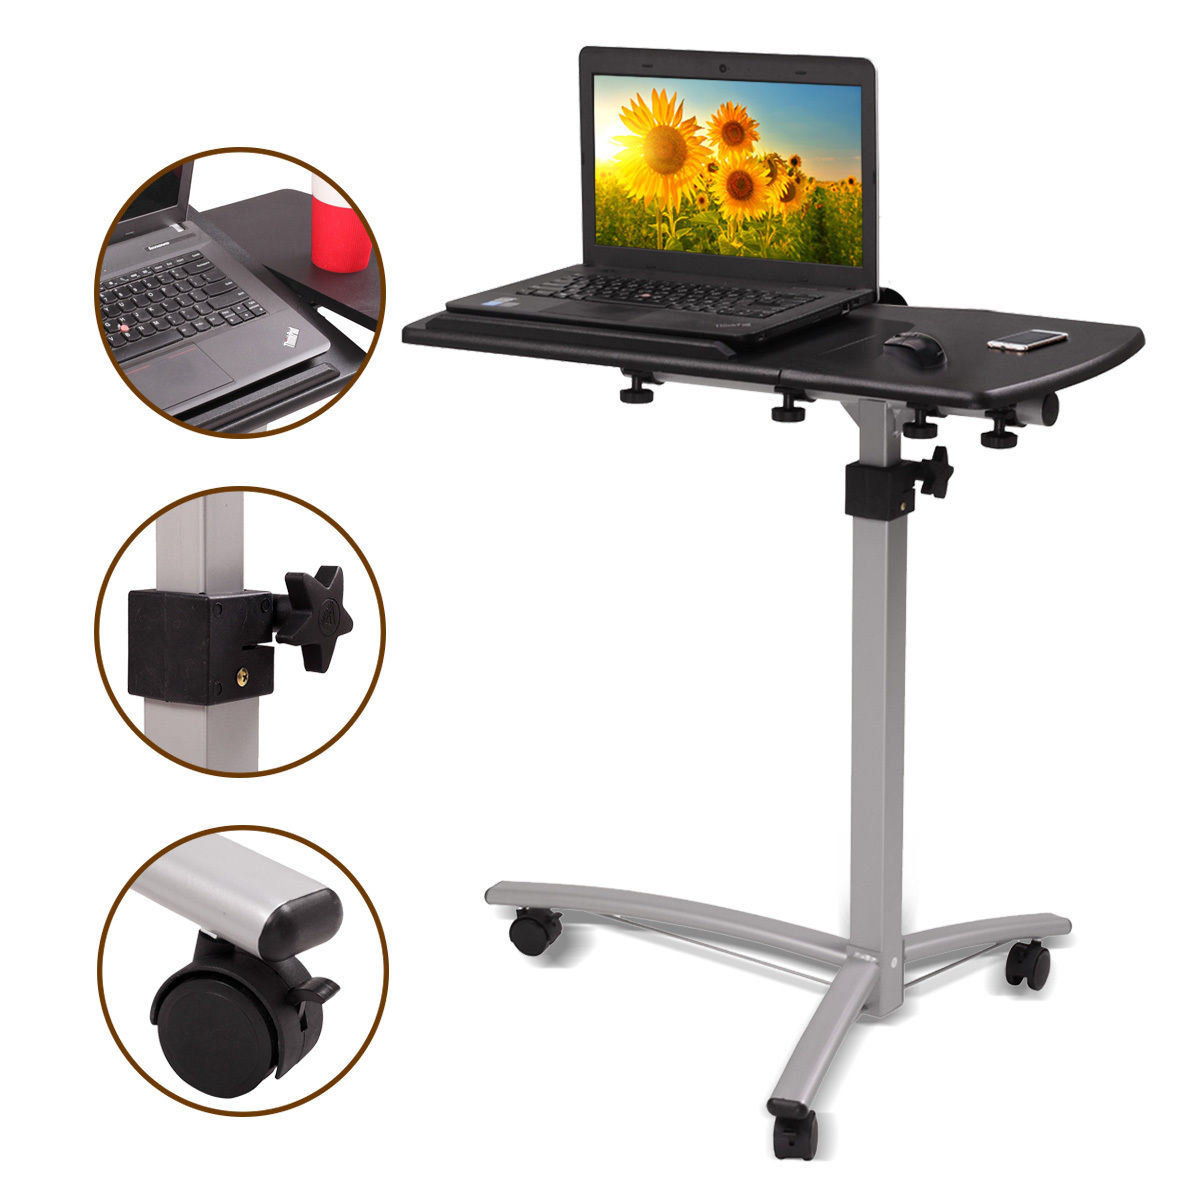 Adjustable Height Stand Desk Computer Workstation Lift Rising Laptop